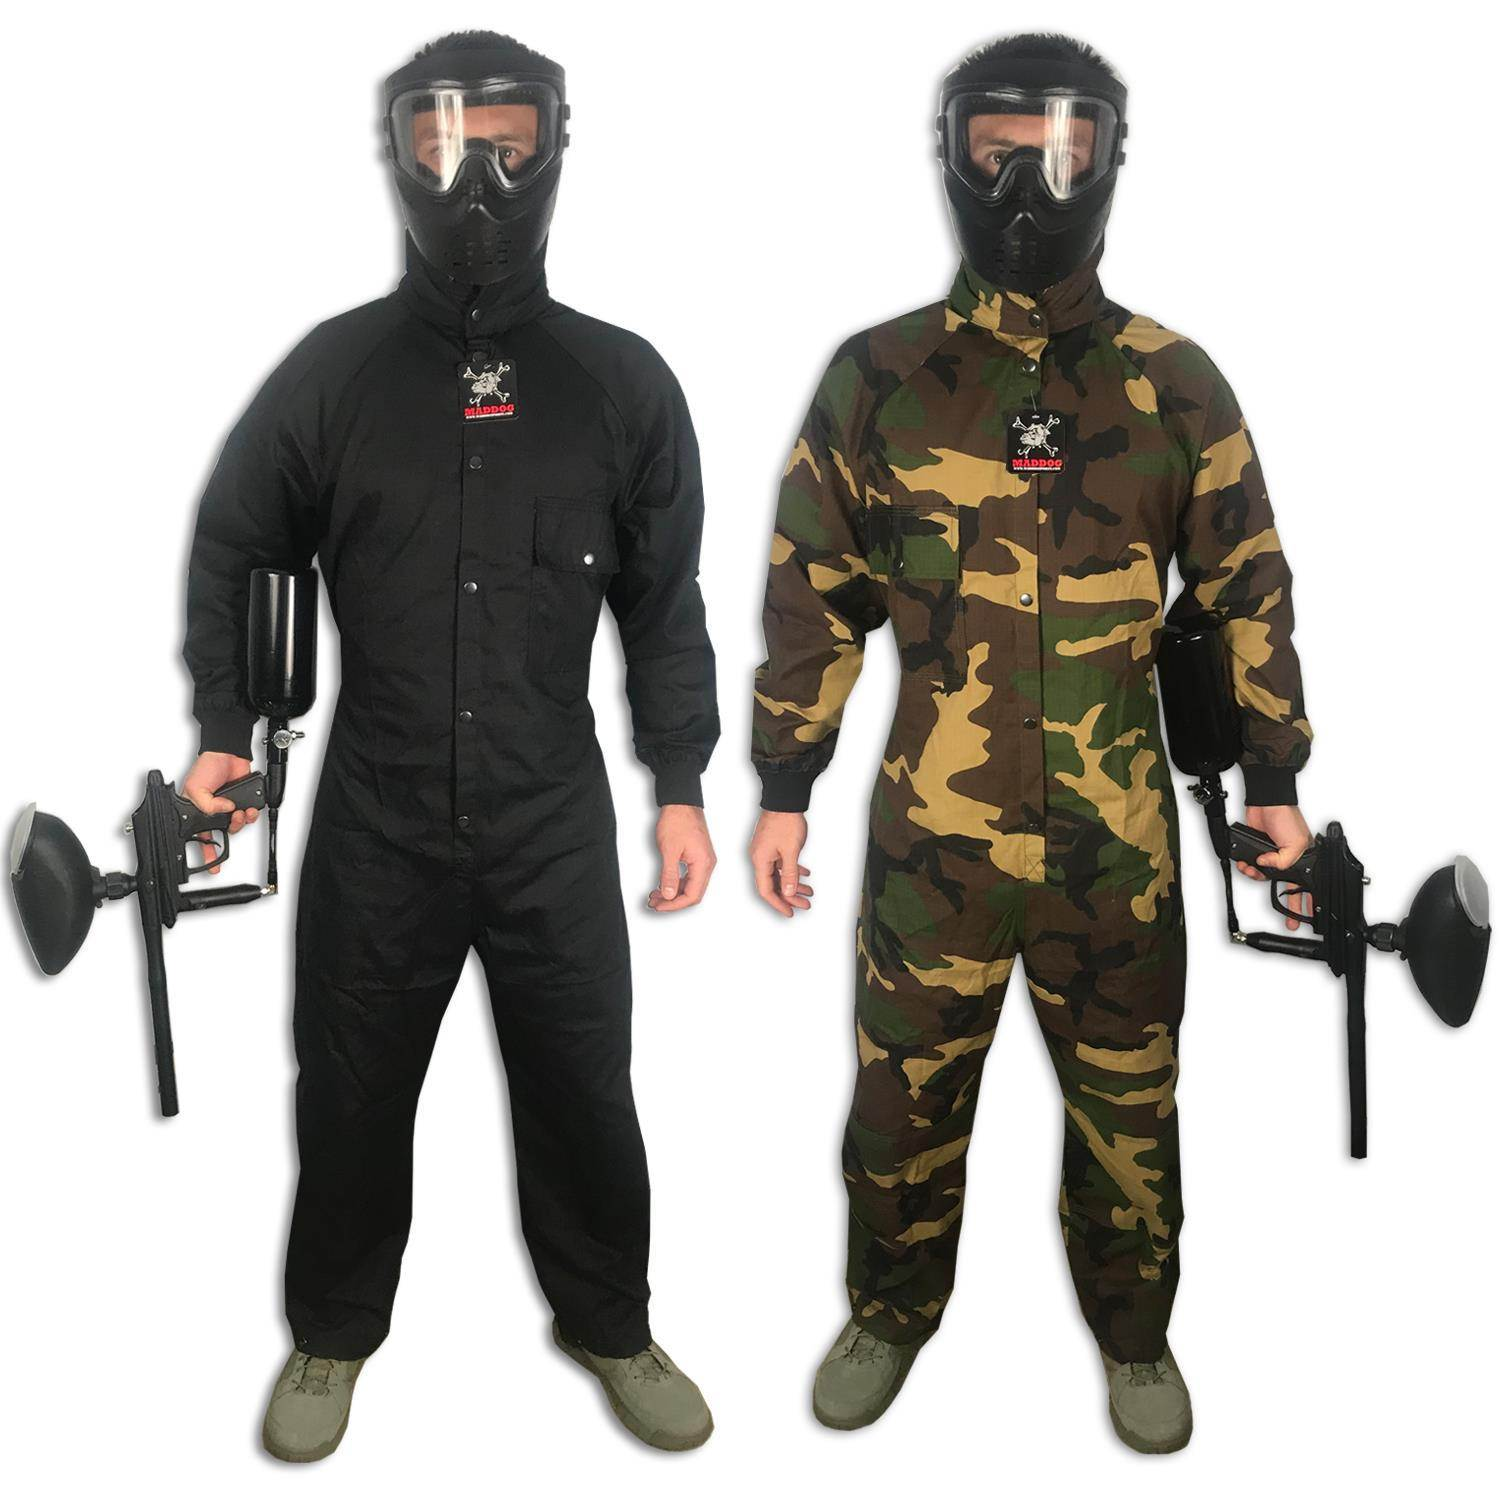 CLEARANCE - Maddog Tactical Paintball Rip Stop Coverall Jumpsuit - OPEN BOX - PaintballDeals.com